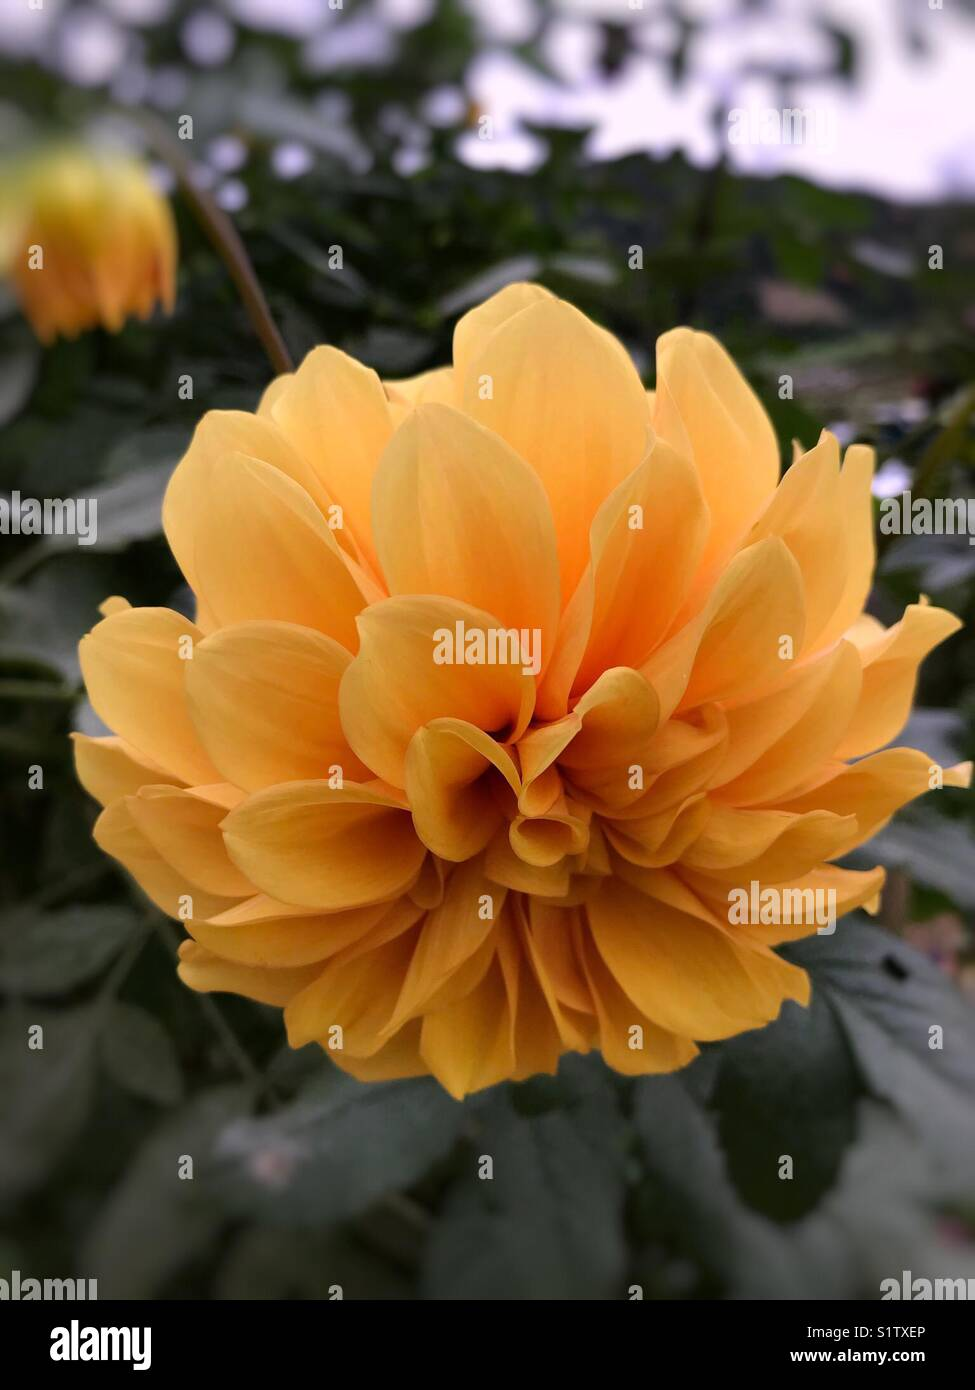 Beautiful Yellow Flower In Cameron Highlands Malaysia Stock Photo